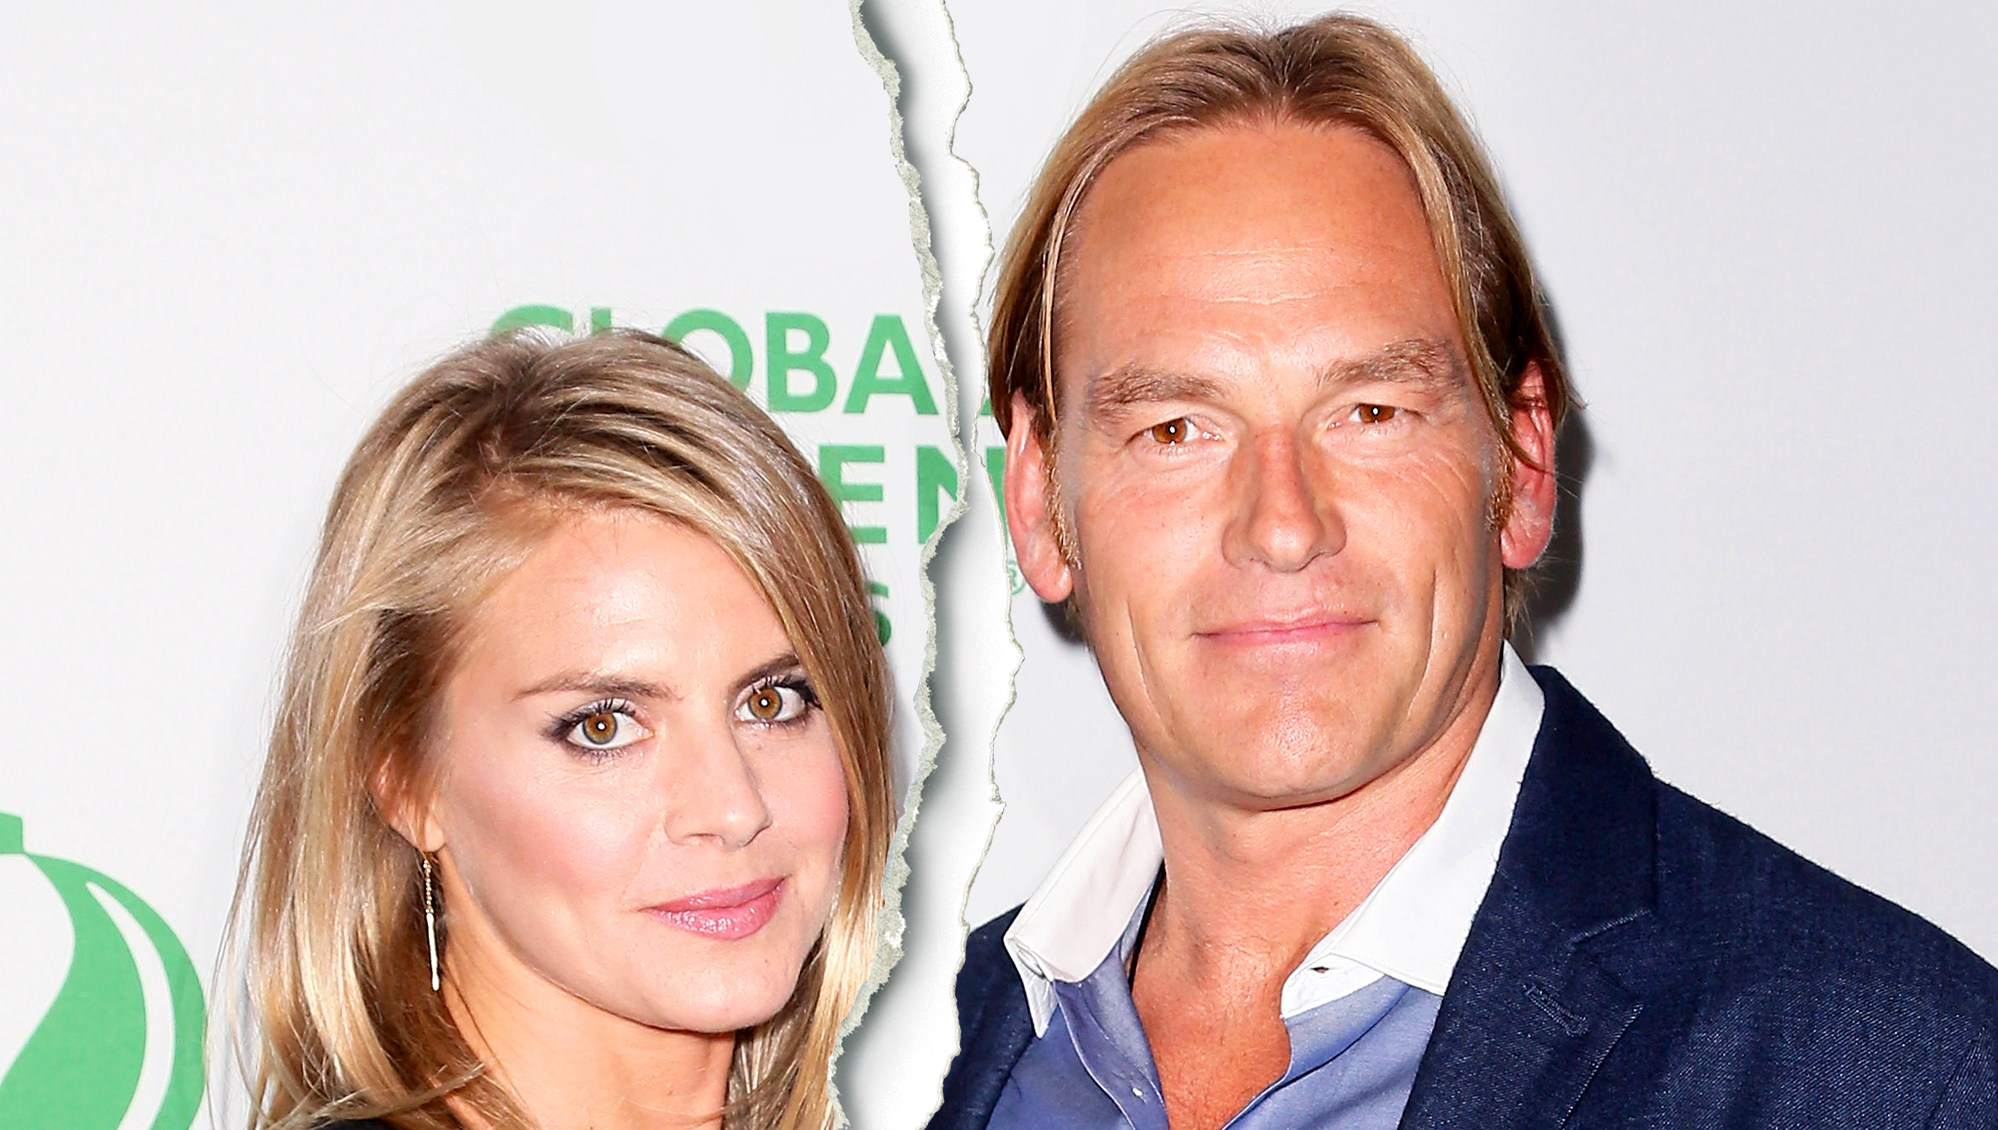 Eliza Coupe and Darin Olien attend Global Green USA's 11th Annual Pre-Oscar Party at Avalon in Hollywood, California.